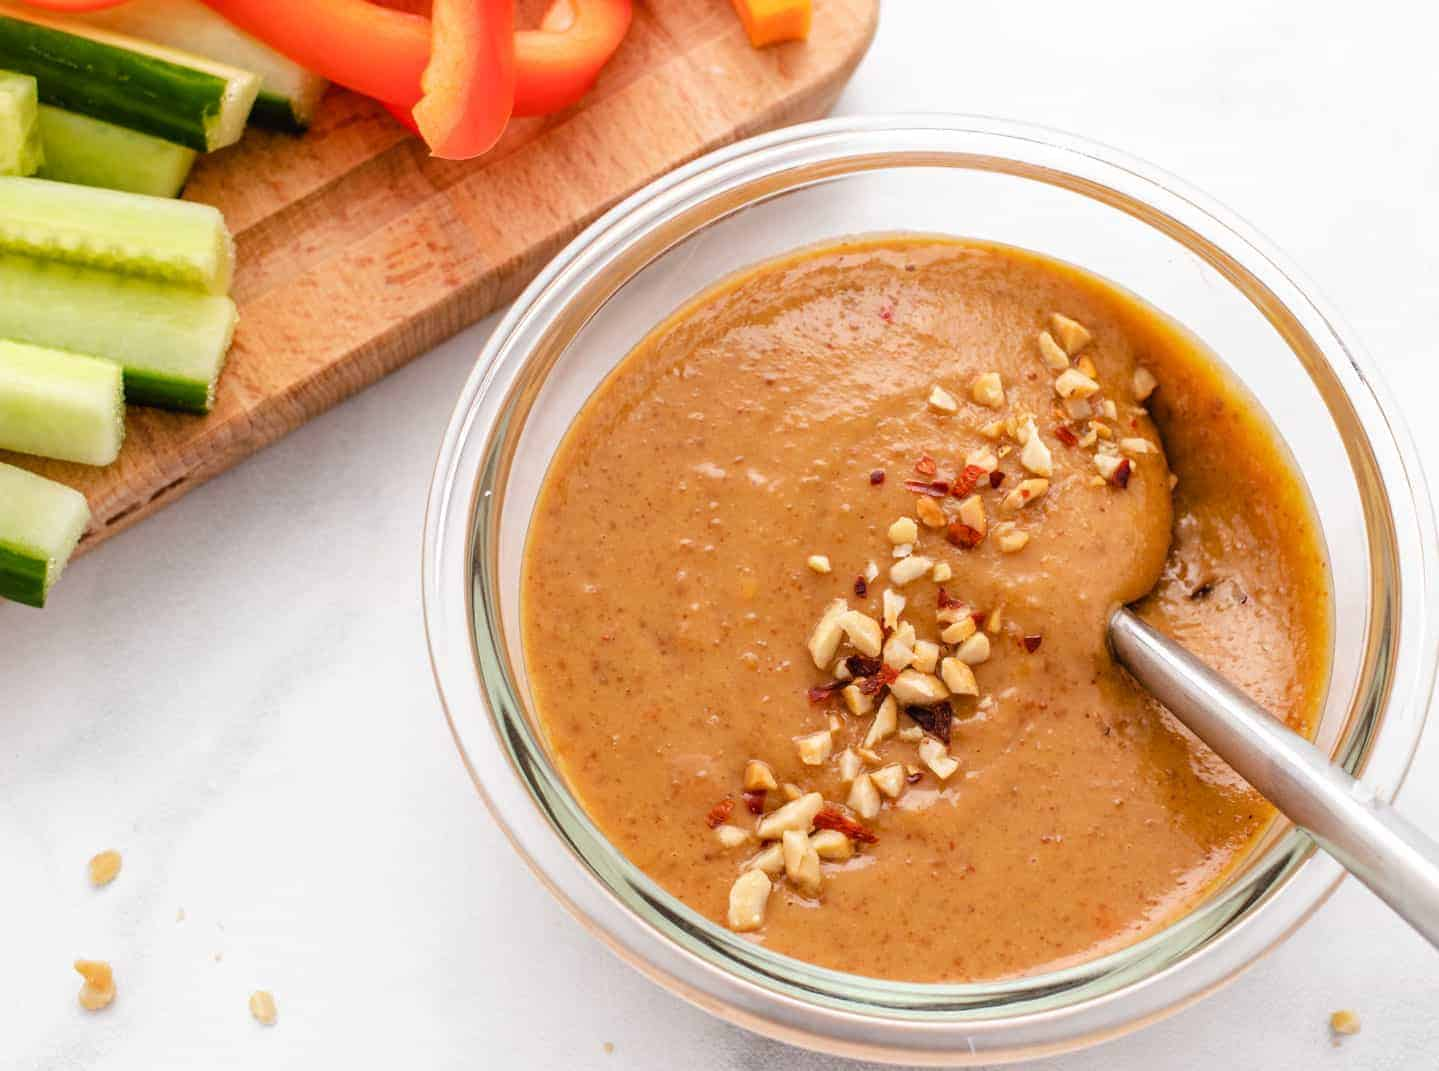 peanut sauce in a glass bowl with a spoon